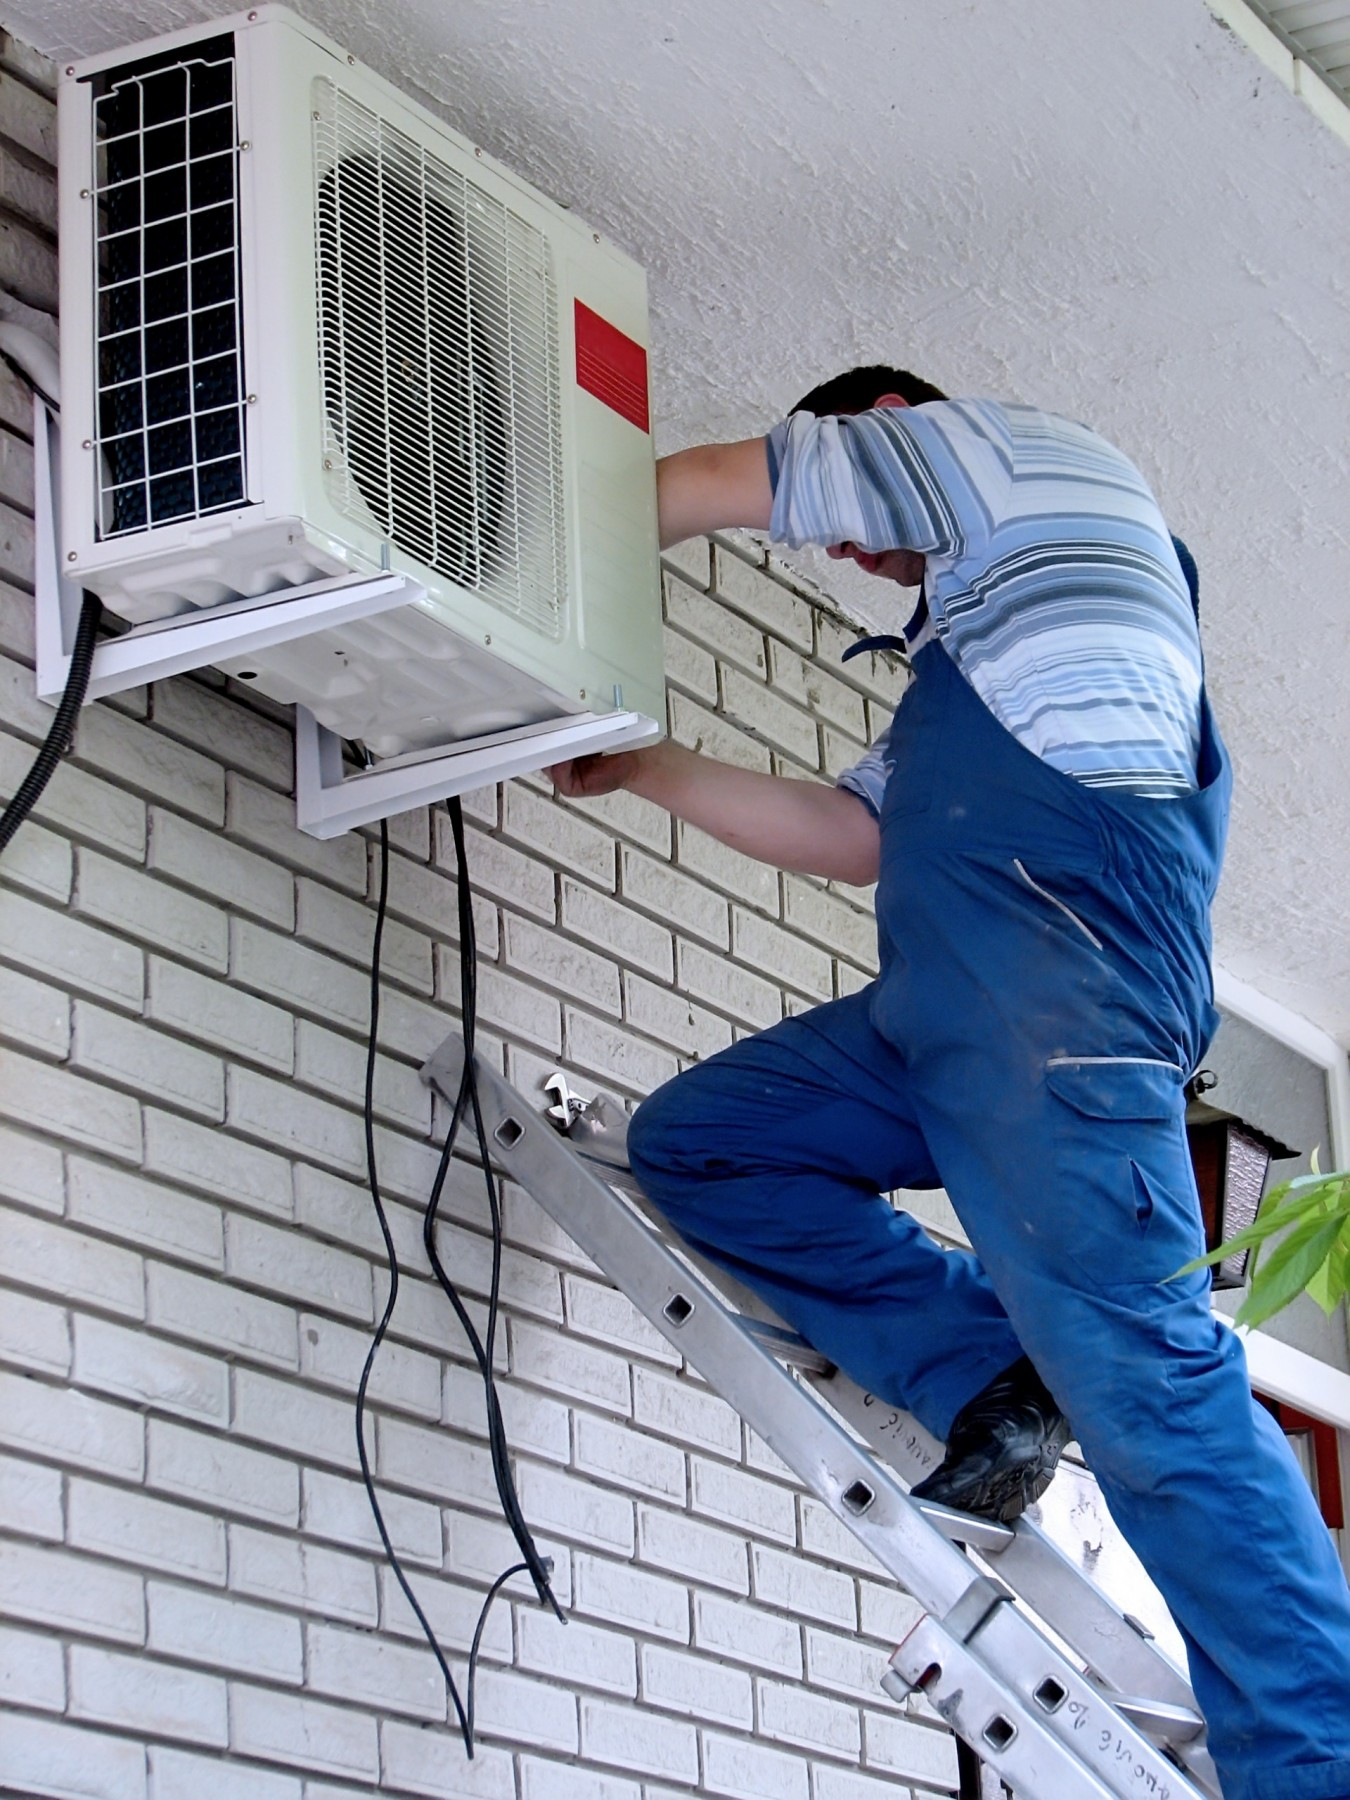 Ductless mini-split heat pumps in Boston apartment heating and cooling